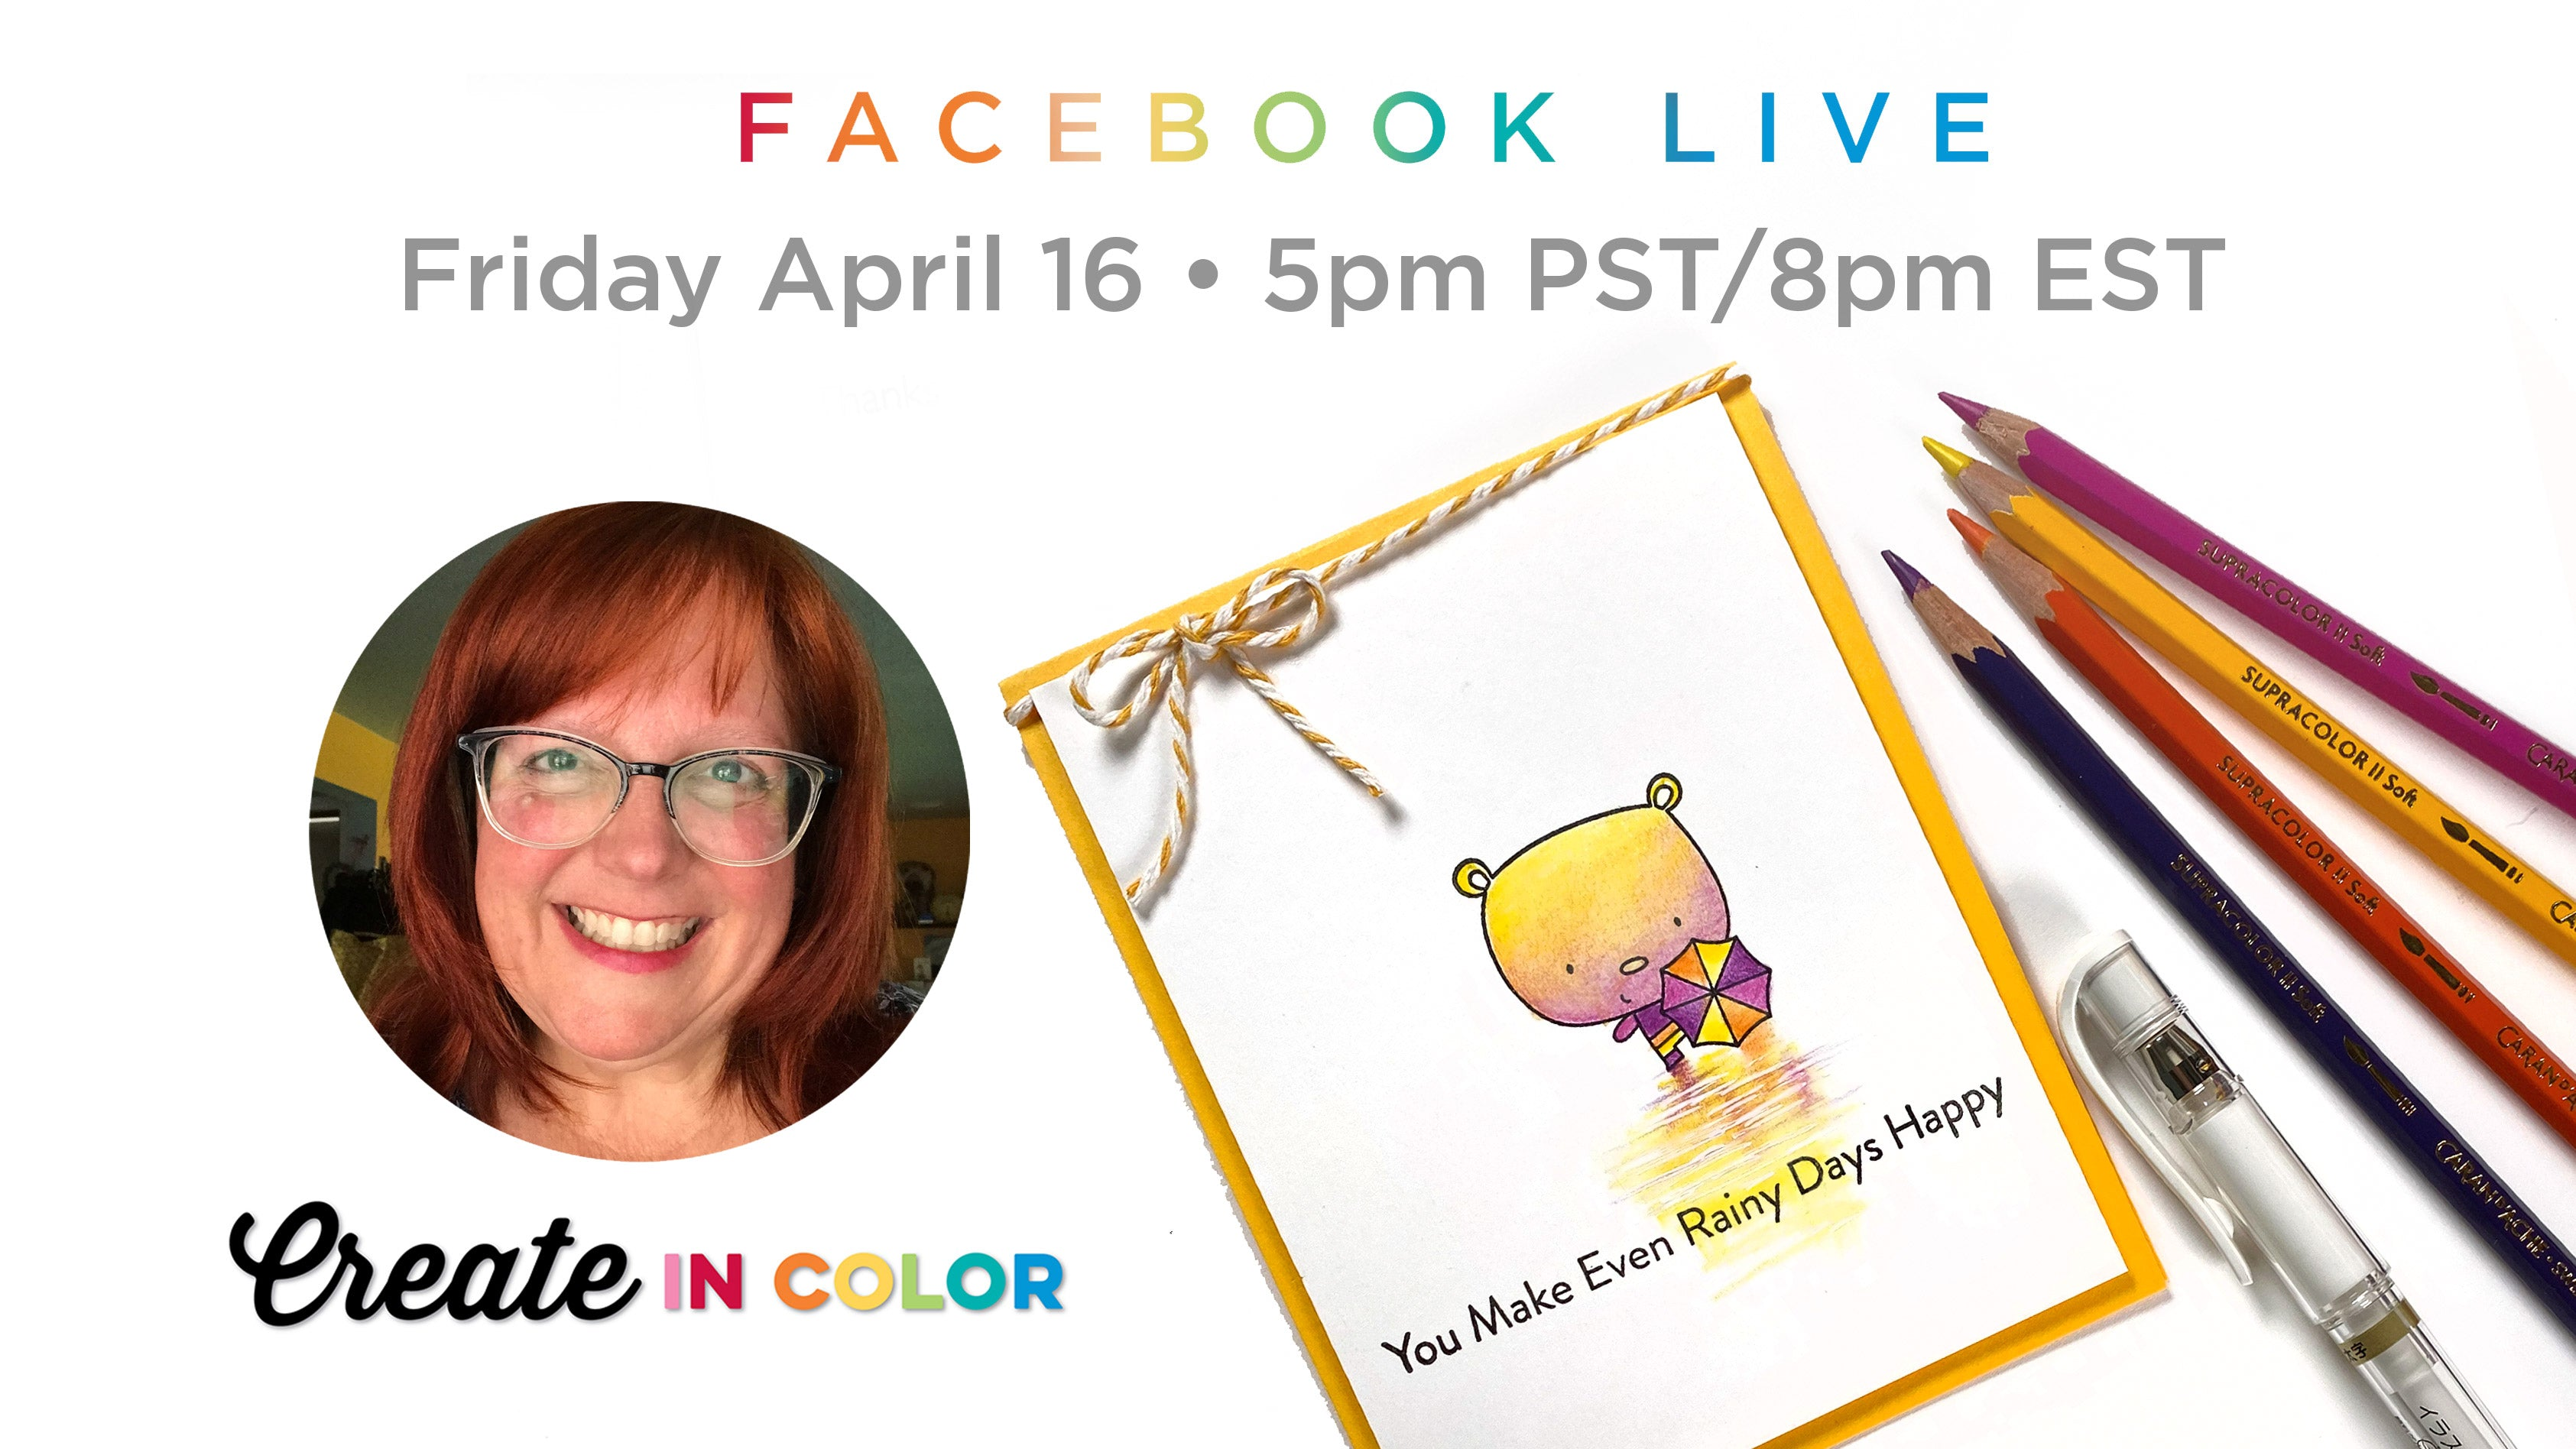 Facebook Live with Sandy Allnock featuring products from My Favorite Things #mftstamps